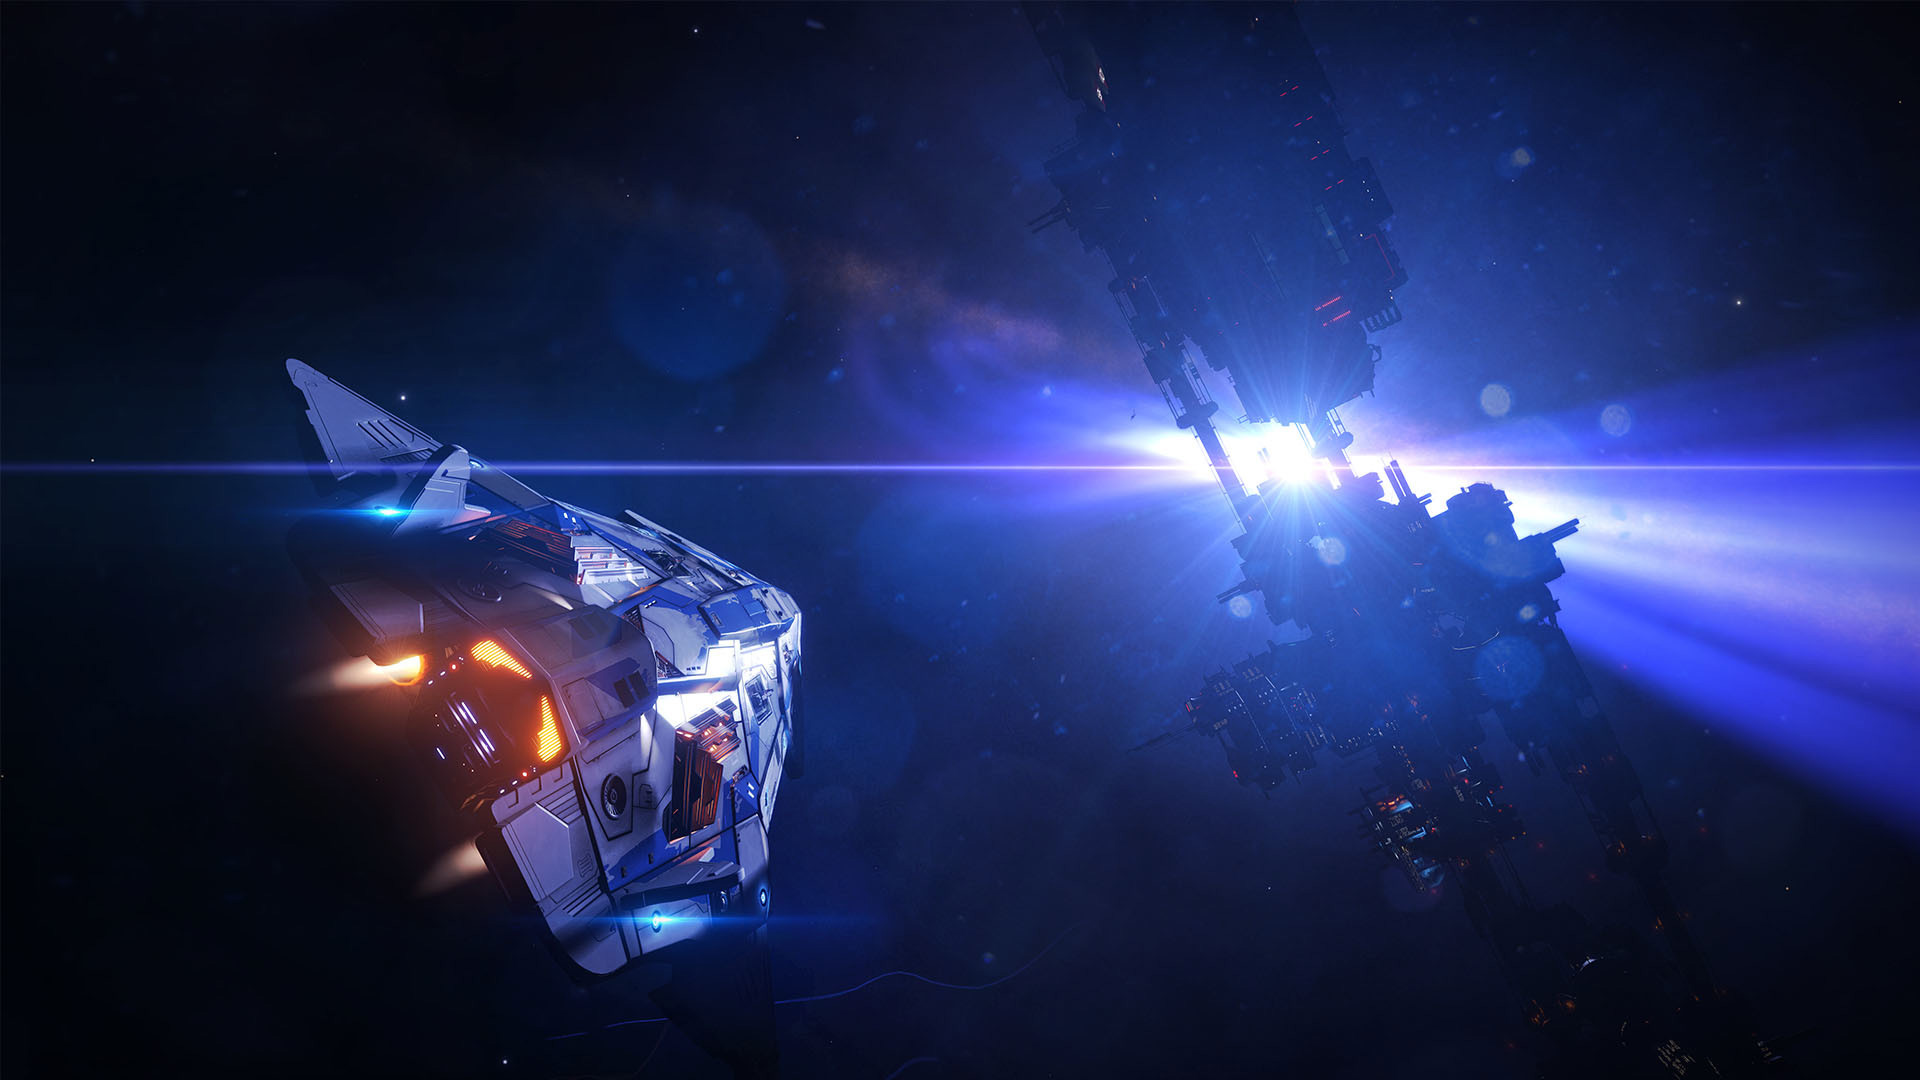 Elite Dangerous is free on the Epic Store this week and MudRunner is coming next screenshot